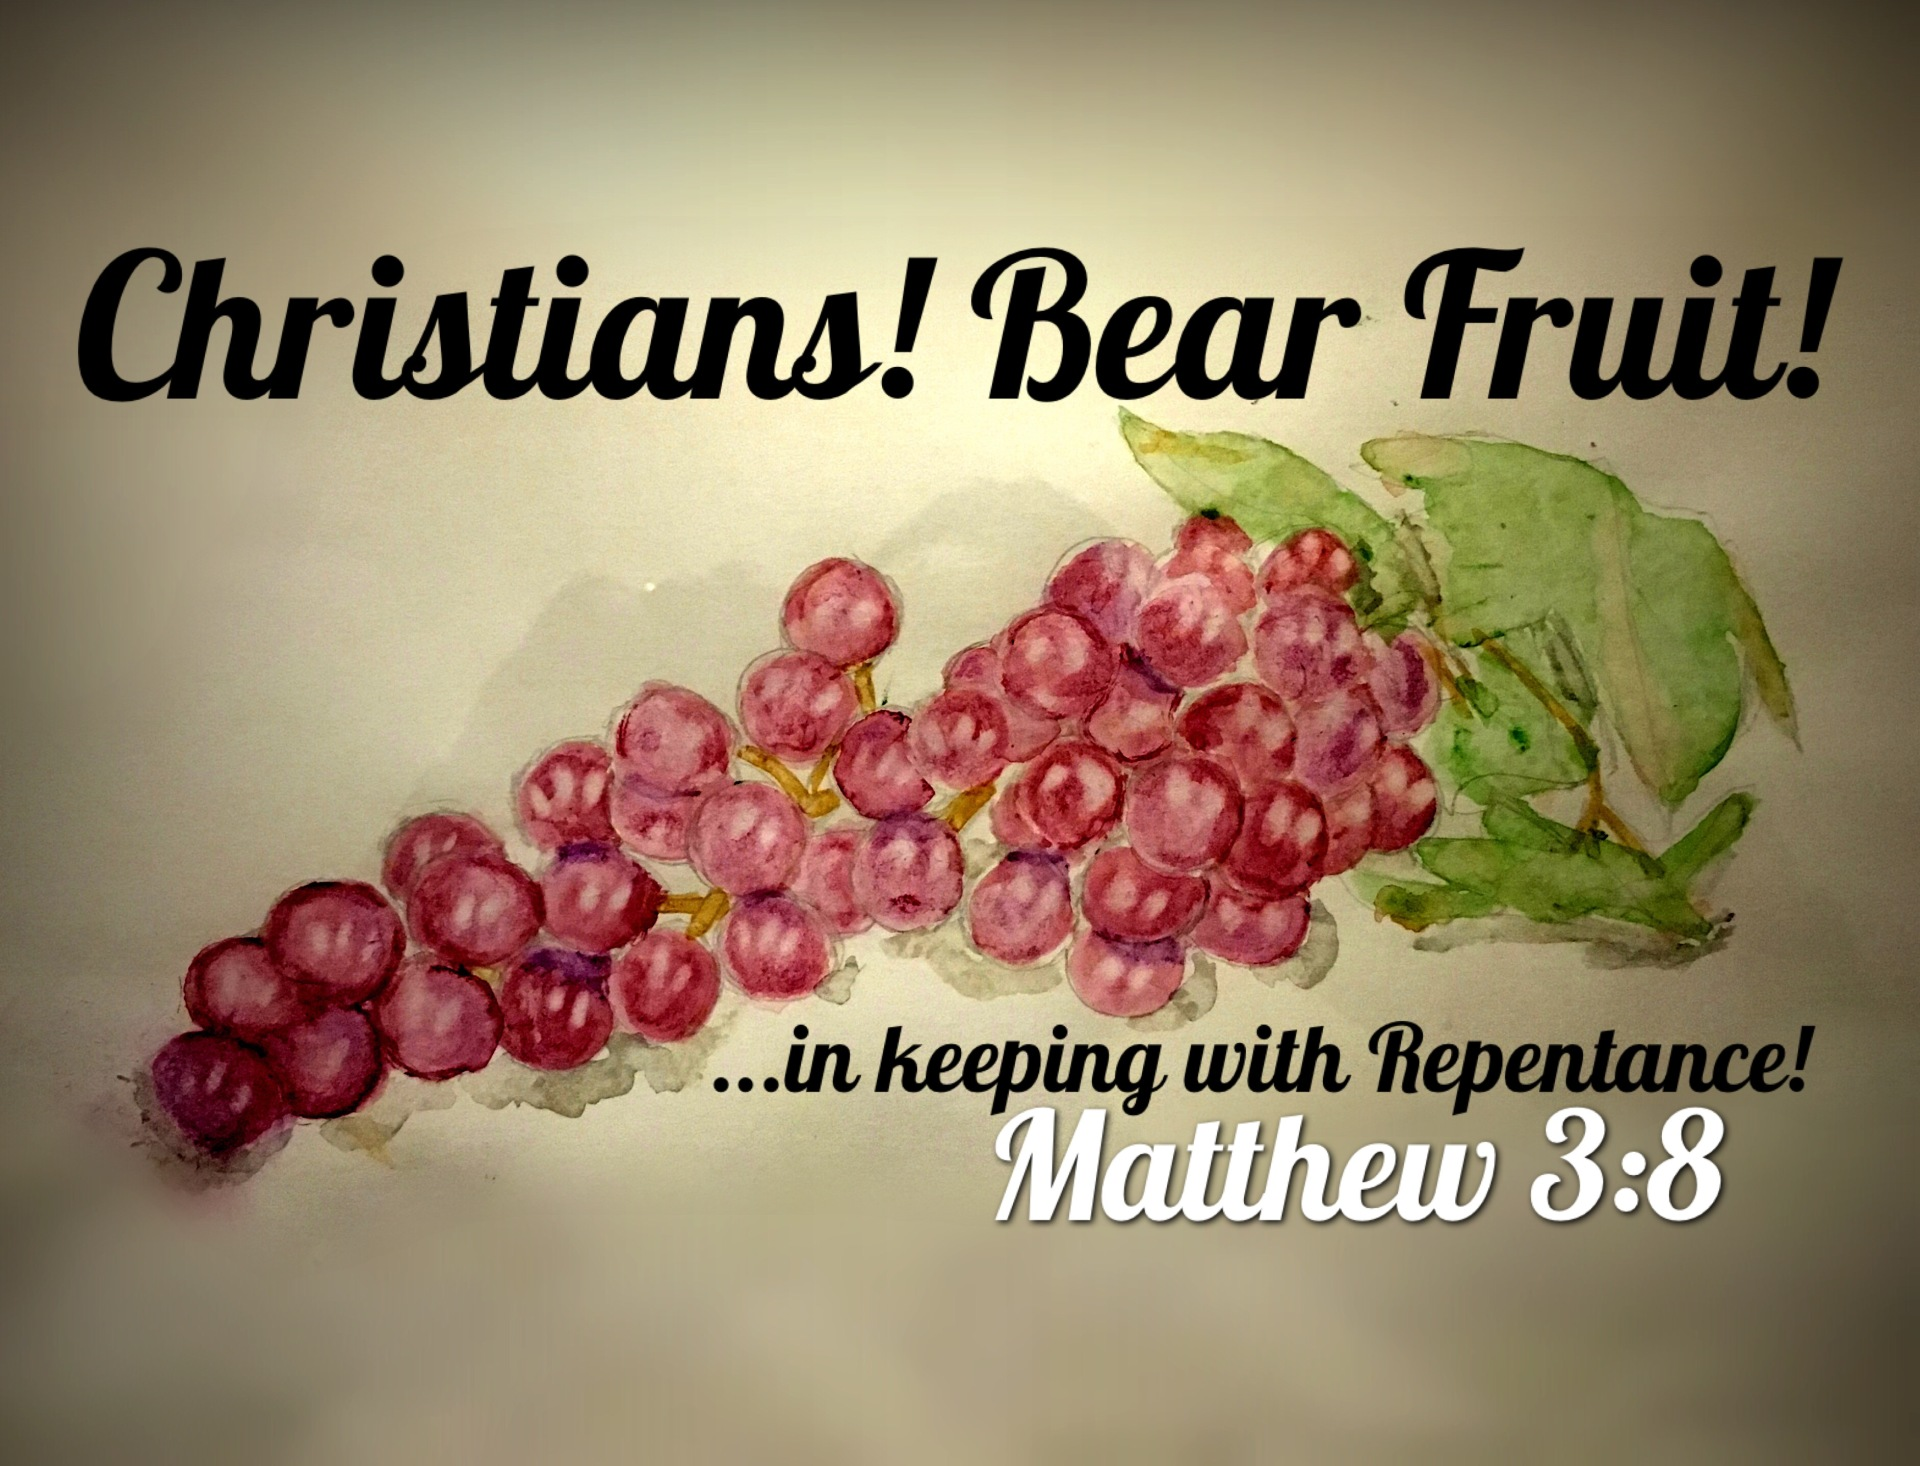 Christians! Bear Fruit! in keeping with repentance